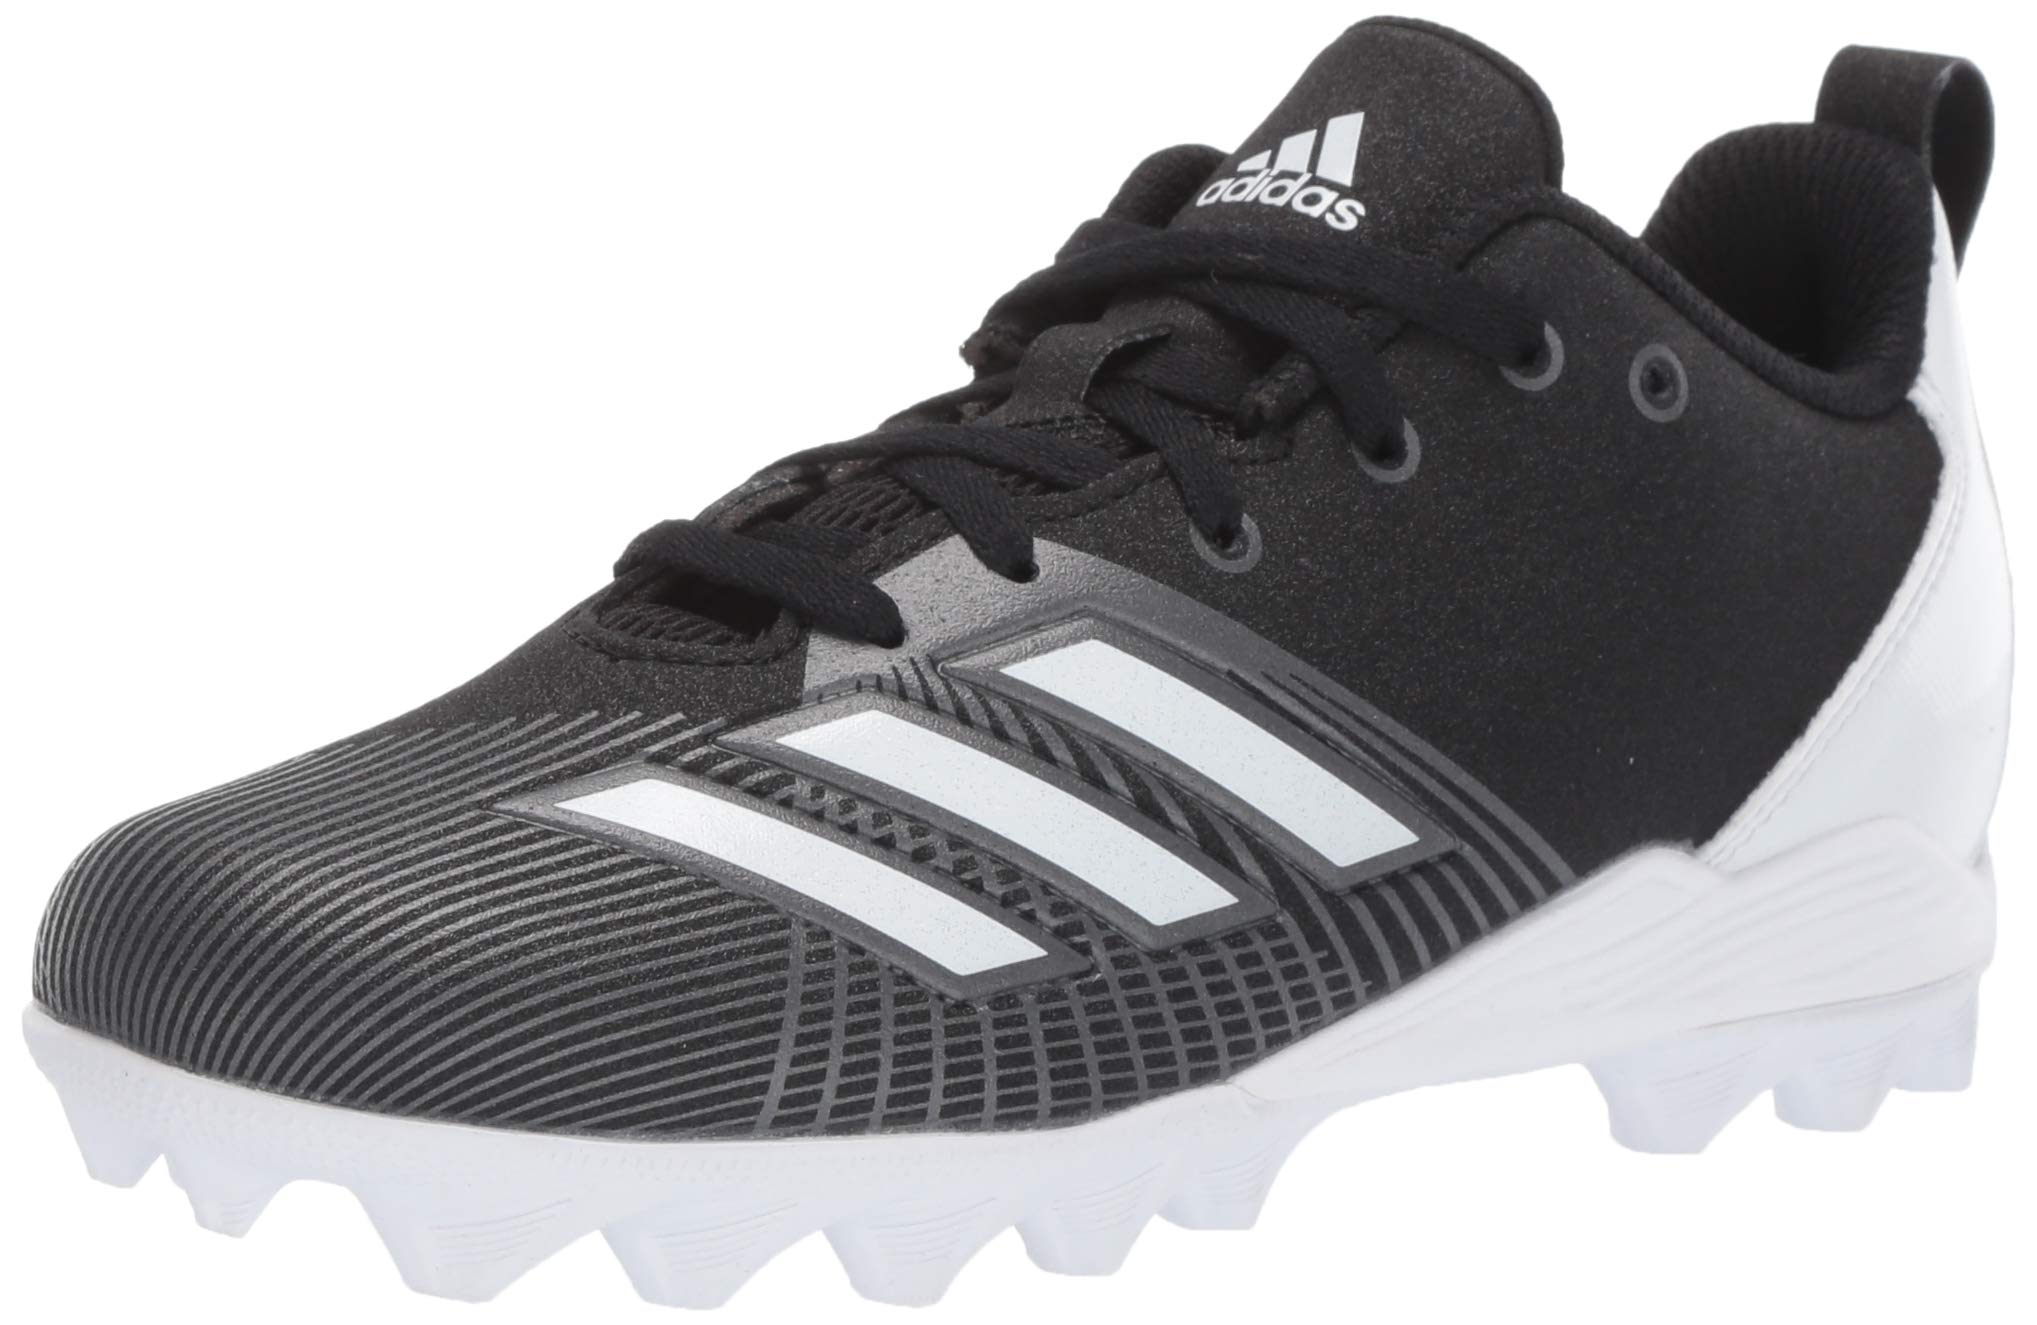 adidas Unisex Adizero Spark Md Football Shoe, Black/White/Night Metallic, 4 M US Big Kid by adidas